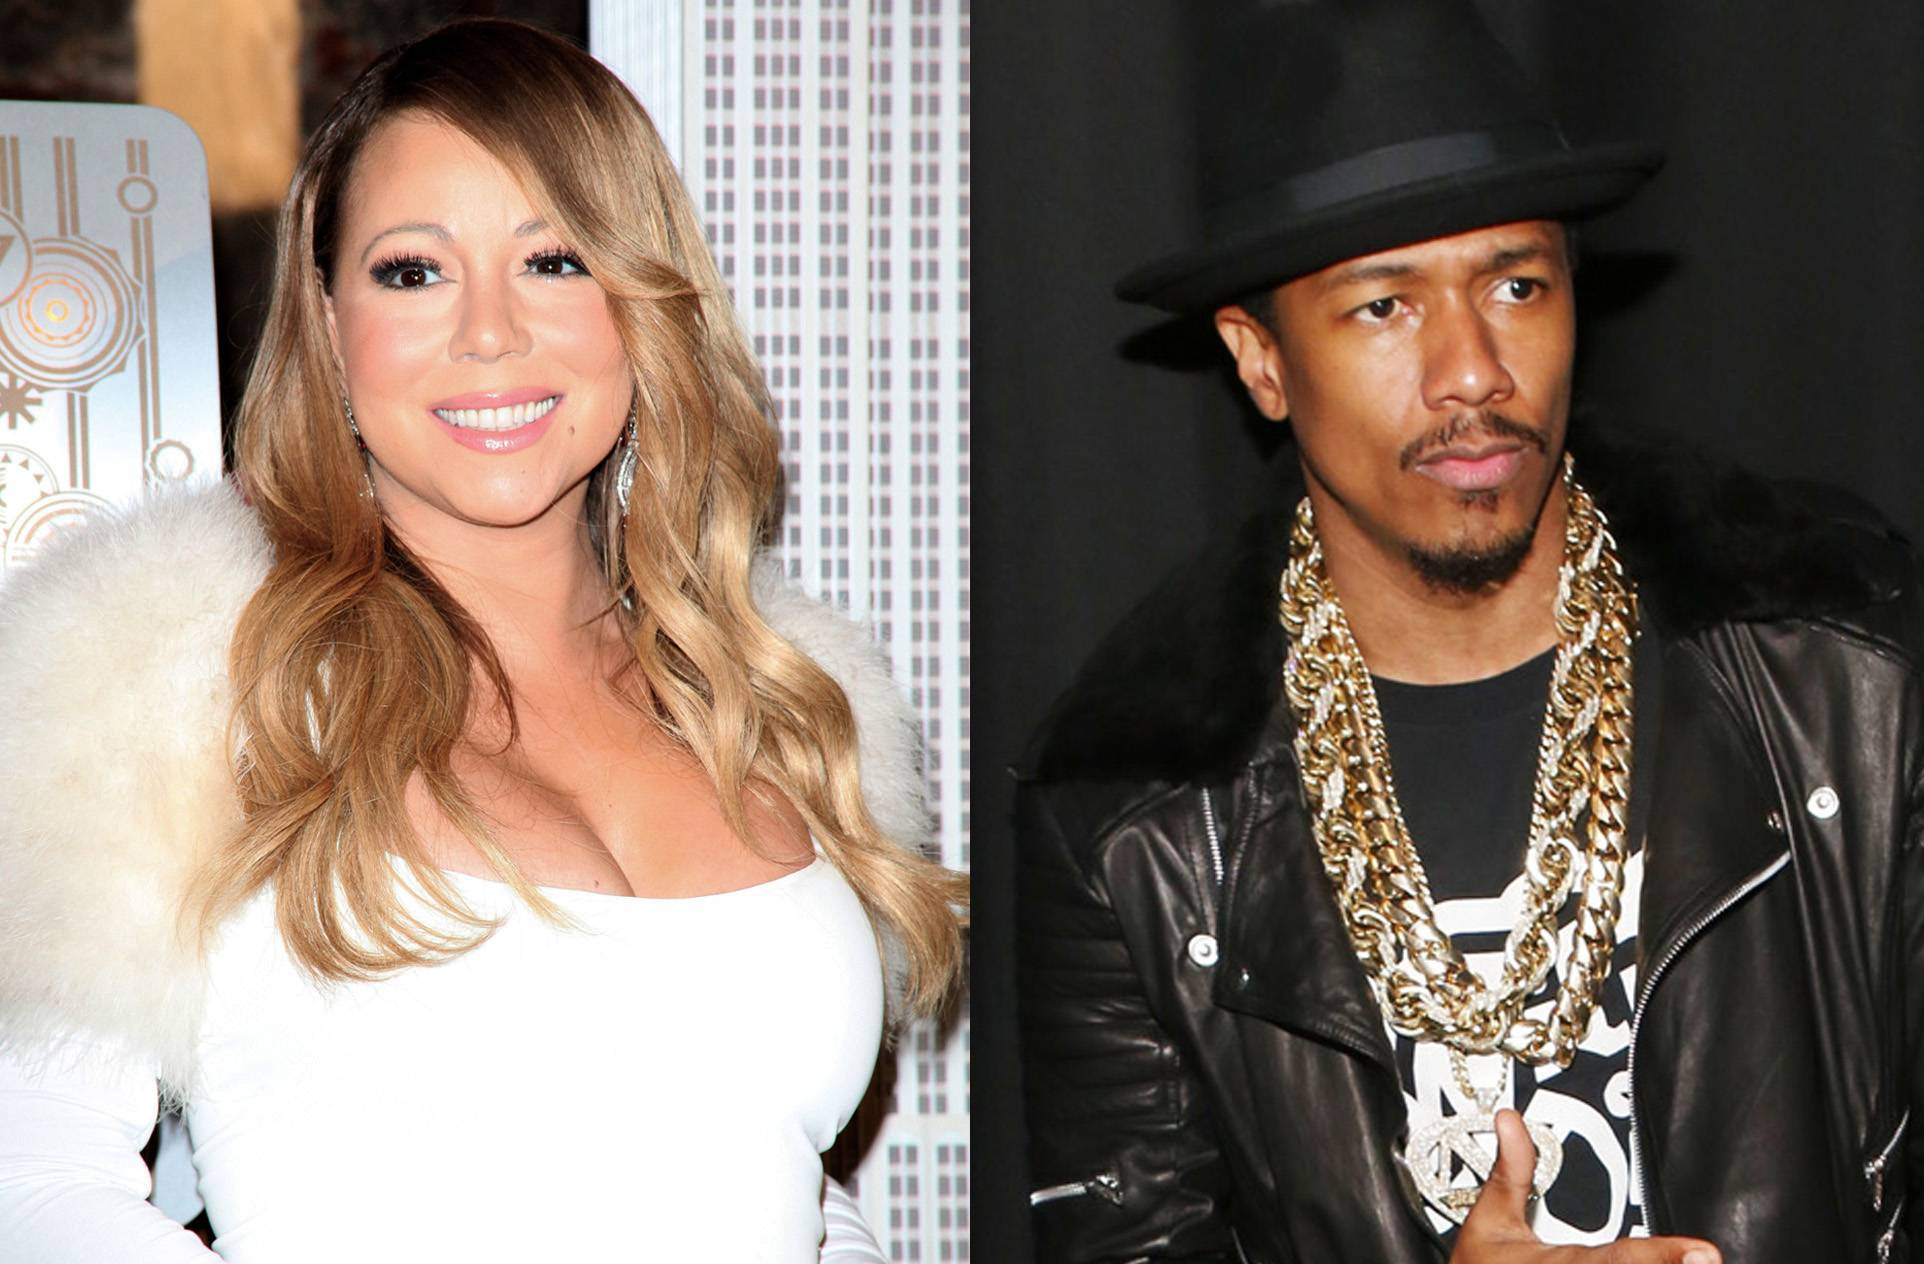 Nick Cannon on His Split From Mariah - Nick Cannon tweeted some statements regarding how the media is handling his split from Mariah Carey. In short, the Real Husbands of Hollywood star is tired of the media sensationalizing everything and says that he will never make a personal statement about this situation adding that he's grateful to Mariah, despite the fact that it didn't work, because she blessed him with their twins.    (Photos from left: PNP/WENN.com, Bennett Raglin/BET/Getty Images for BET)